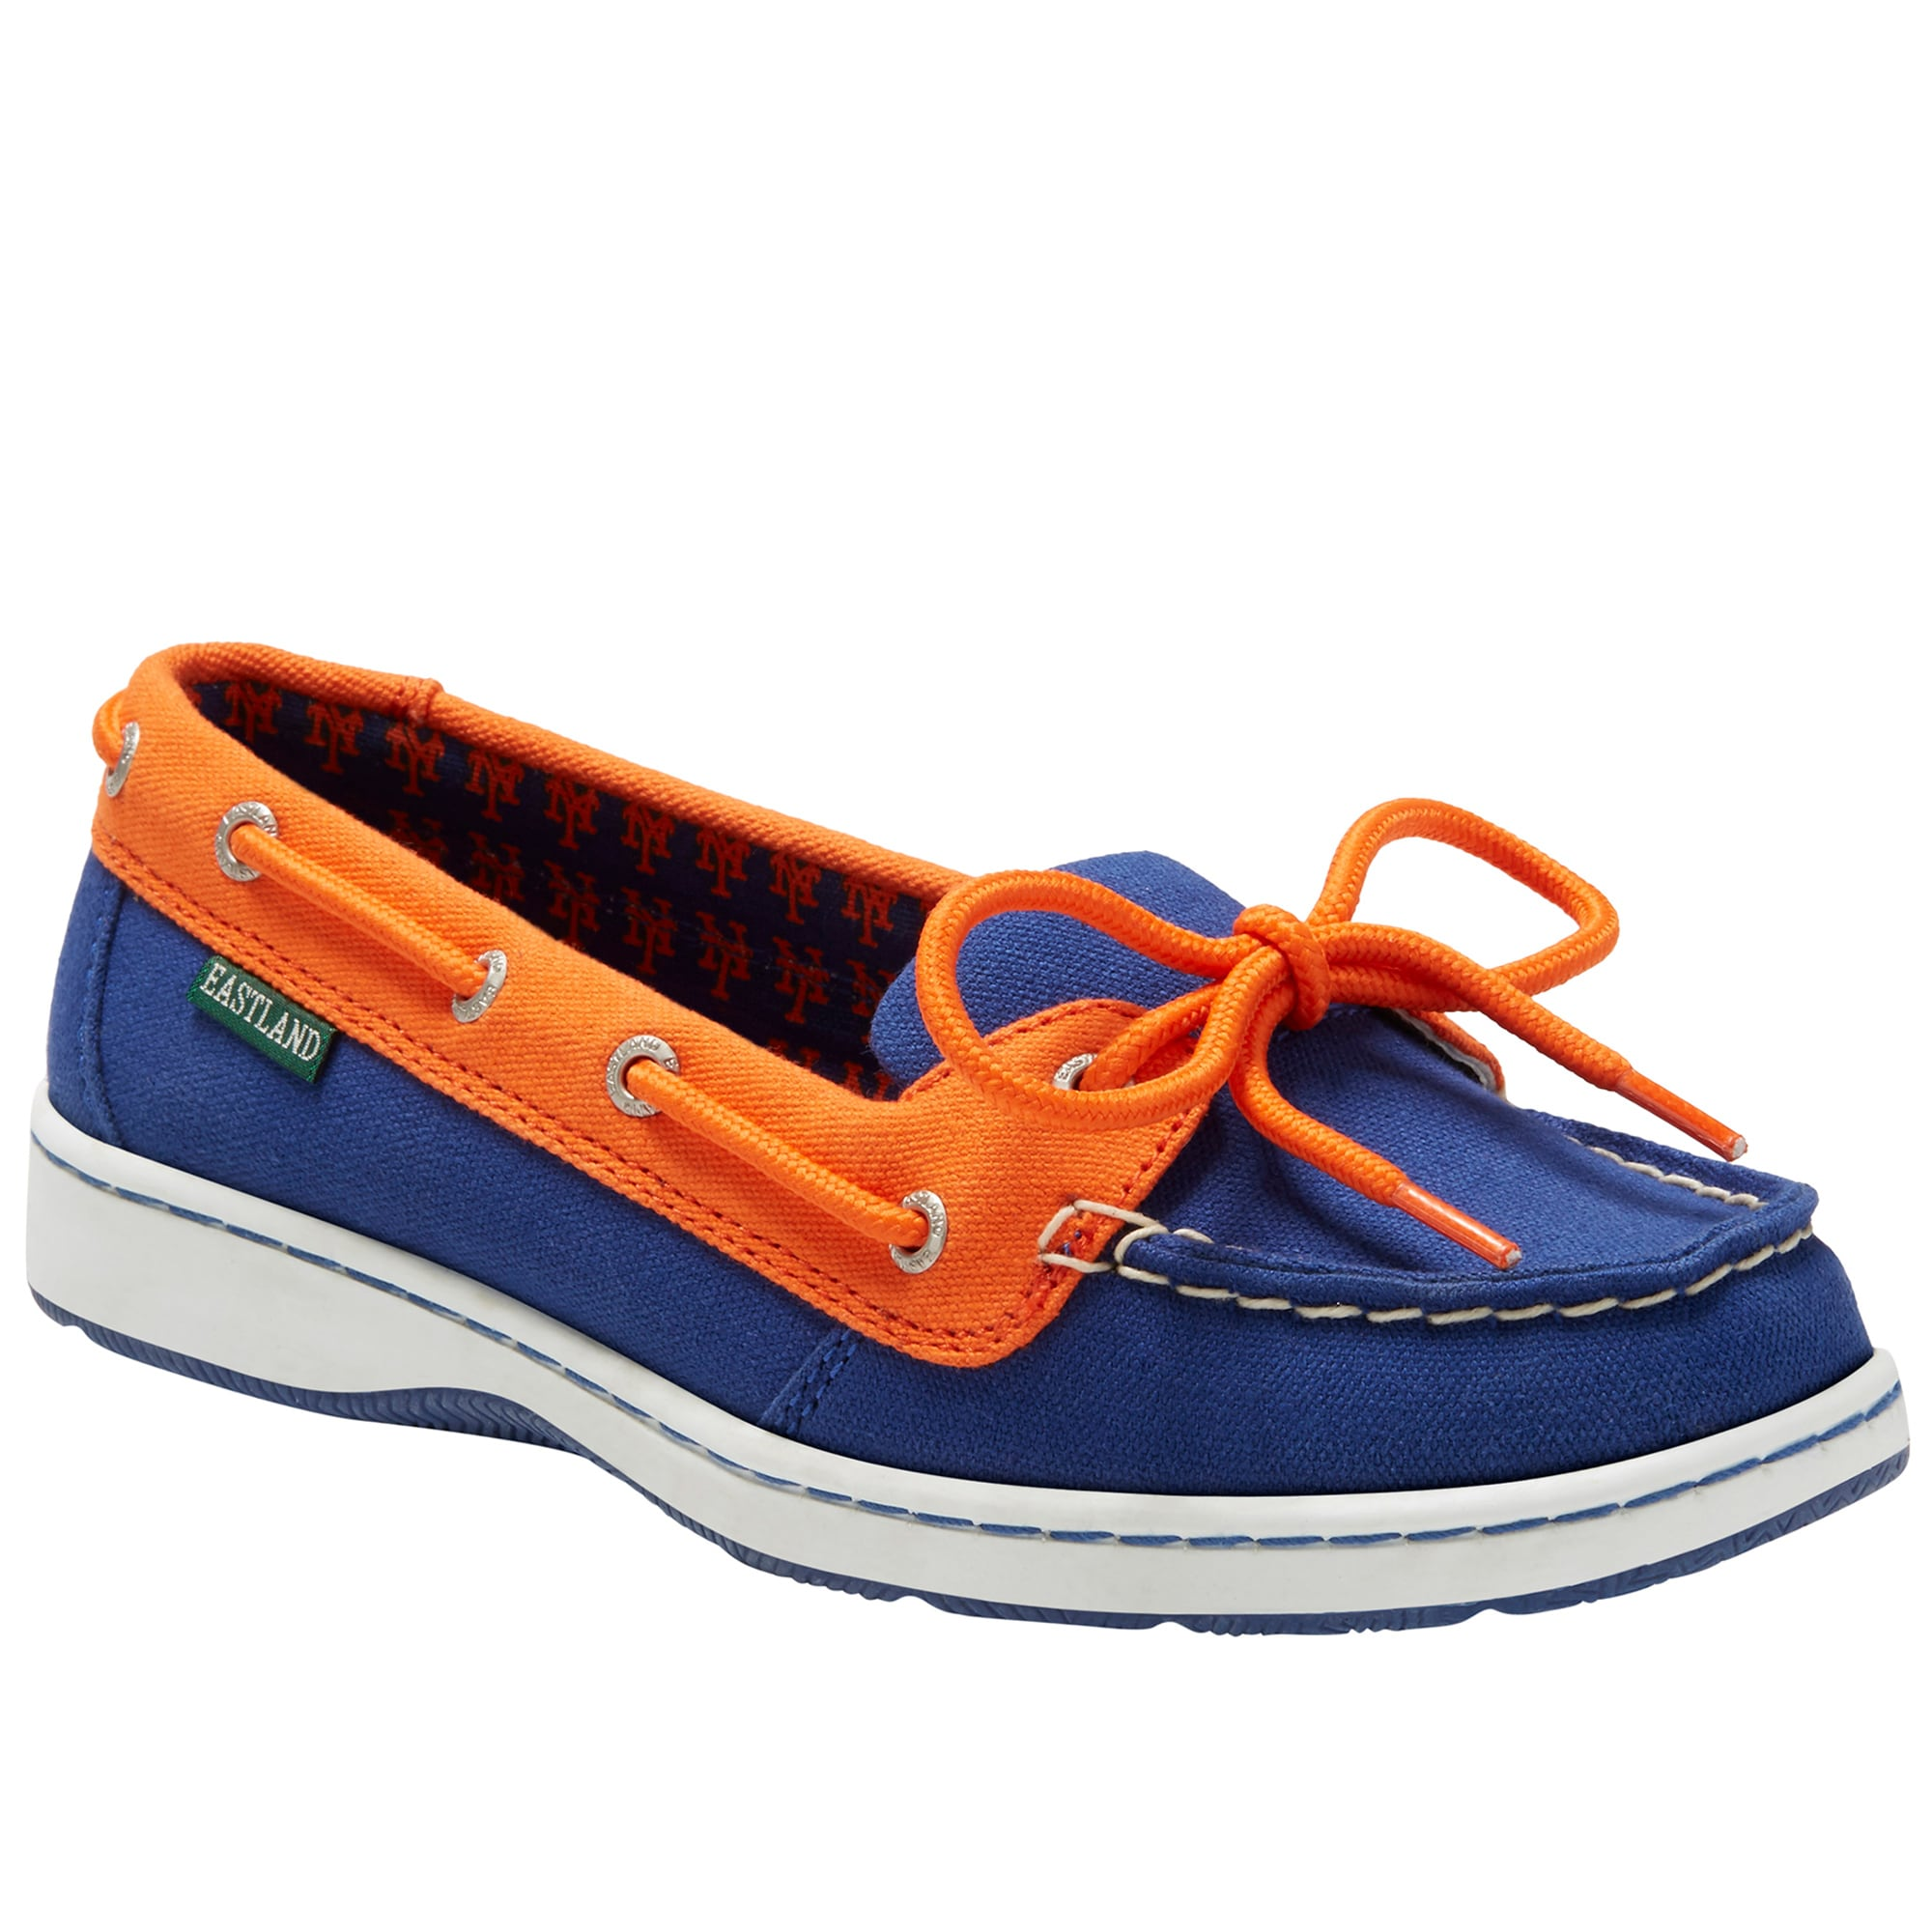 New York Mets Women's Sunset Boat Shoes